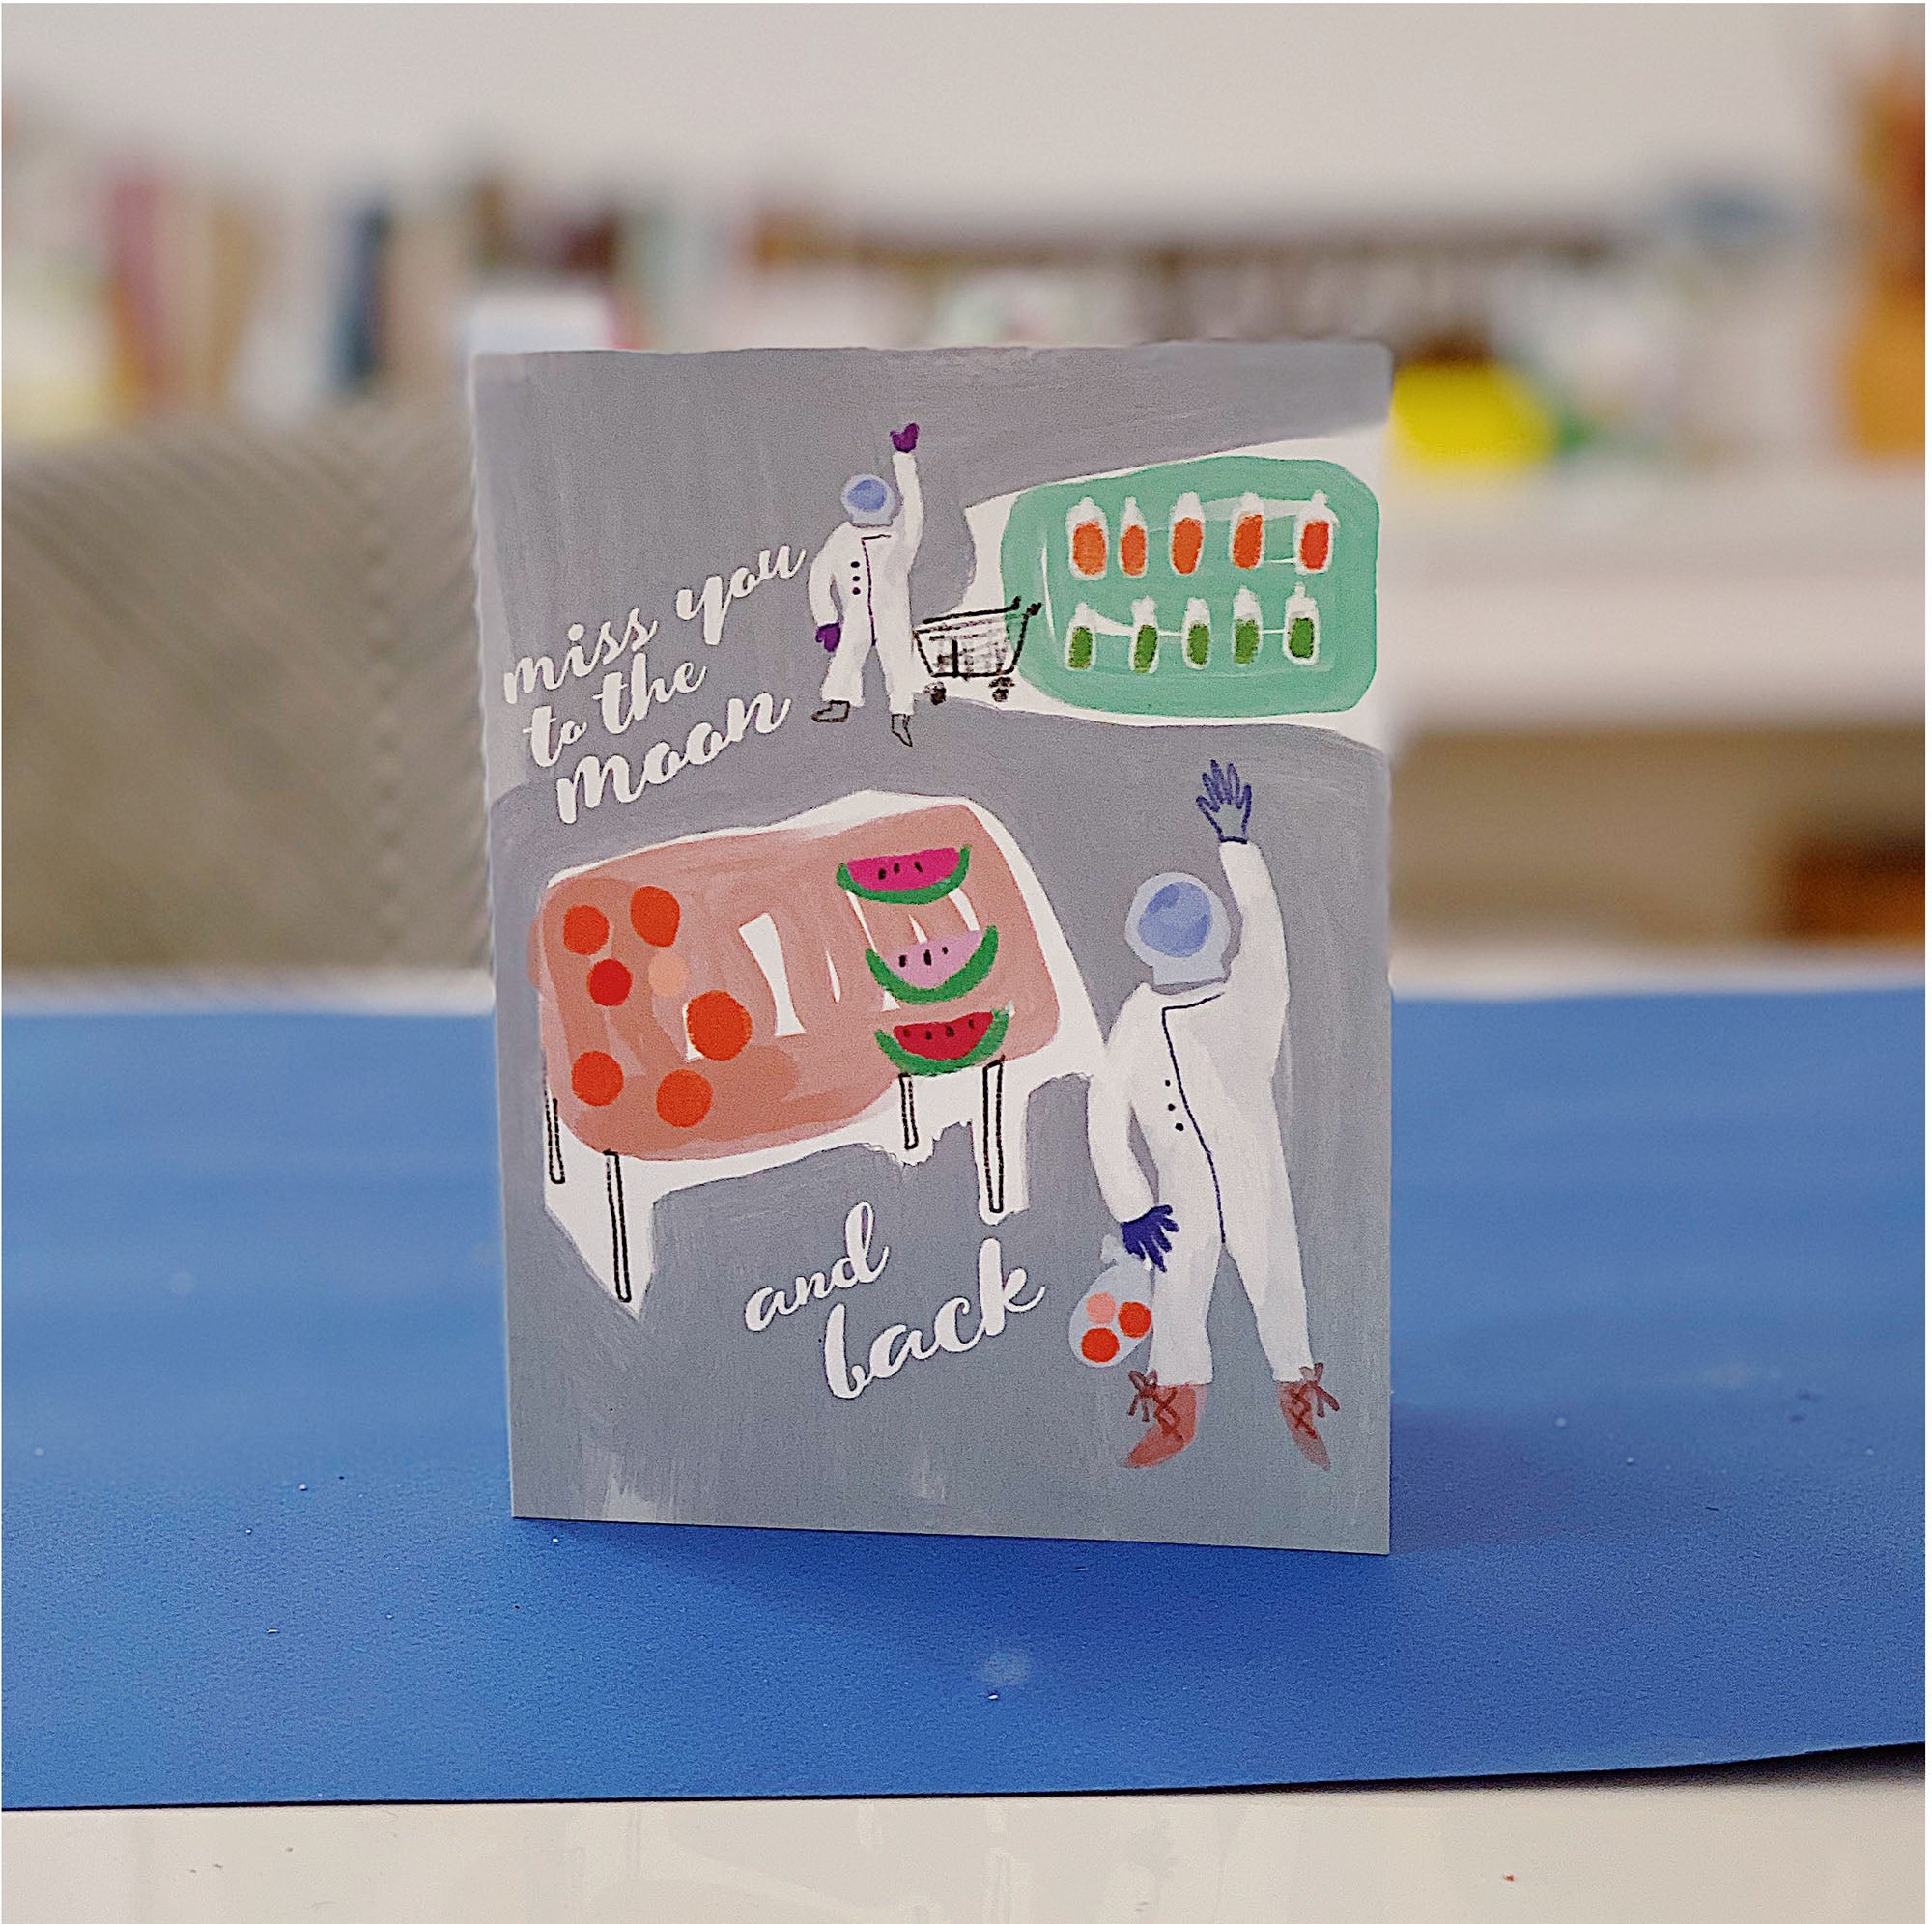 An illustrated greeting card